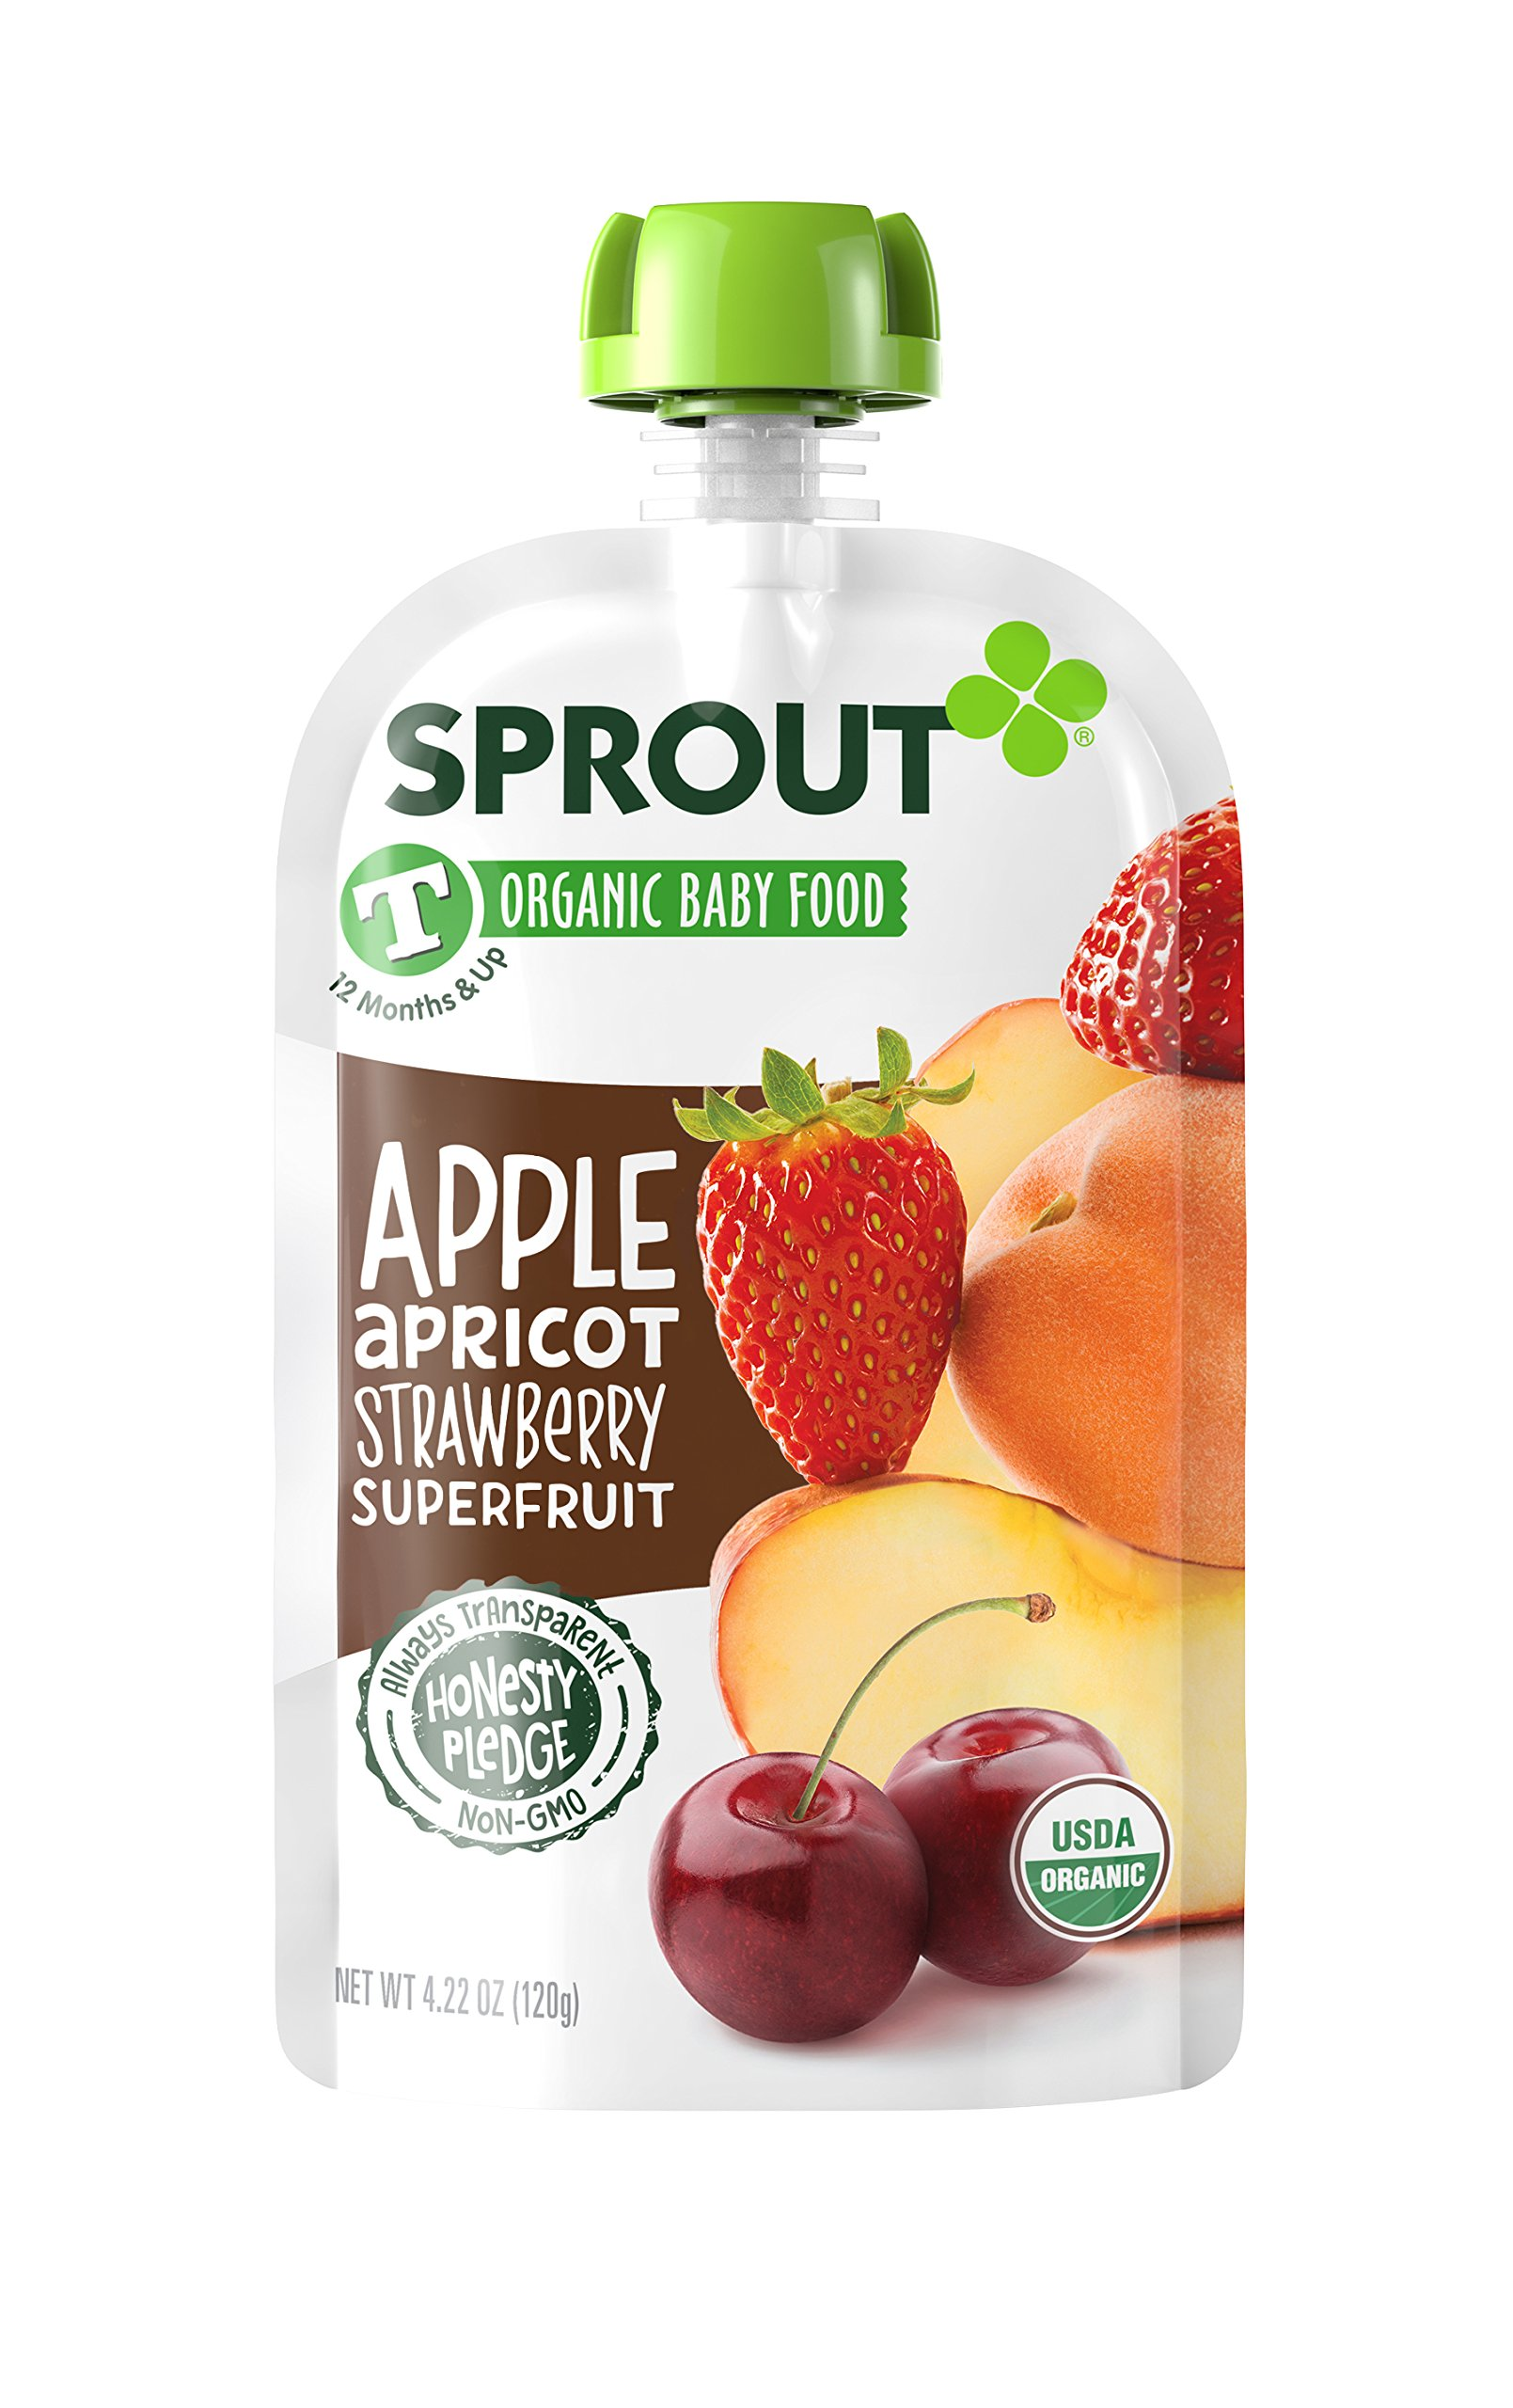 Sprout Organic Baby Food Pouches Sprout Organic Power Pak Toddler Food Pouch, Superblend with Apple Apricot & Strawberry, 4 Ounce (Pack of 12); USDA Organic, Non-GMO, 3 Grams of Protein, Plant Powered